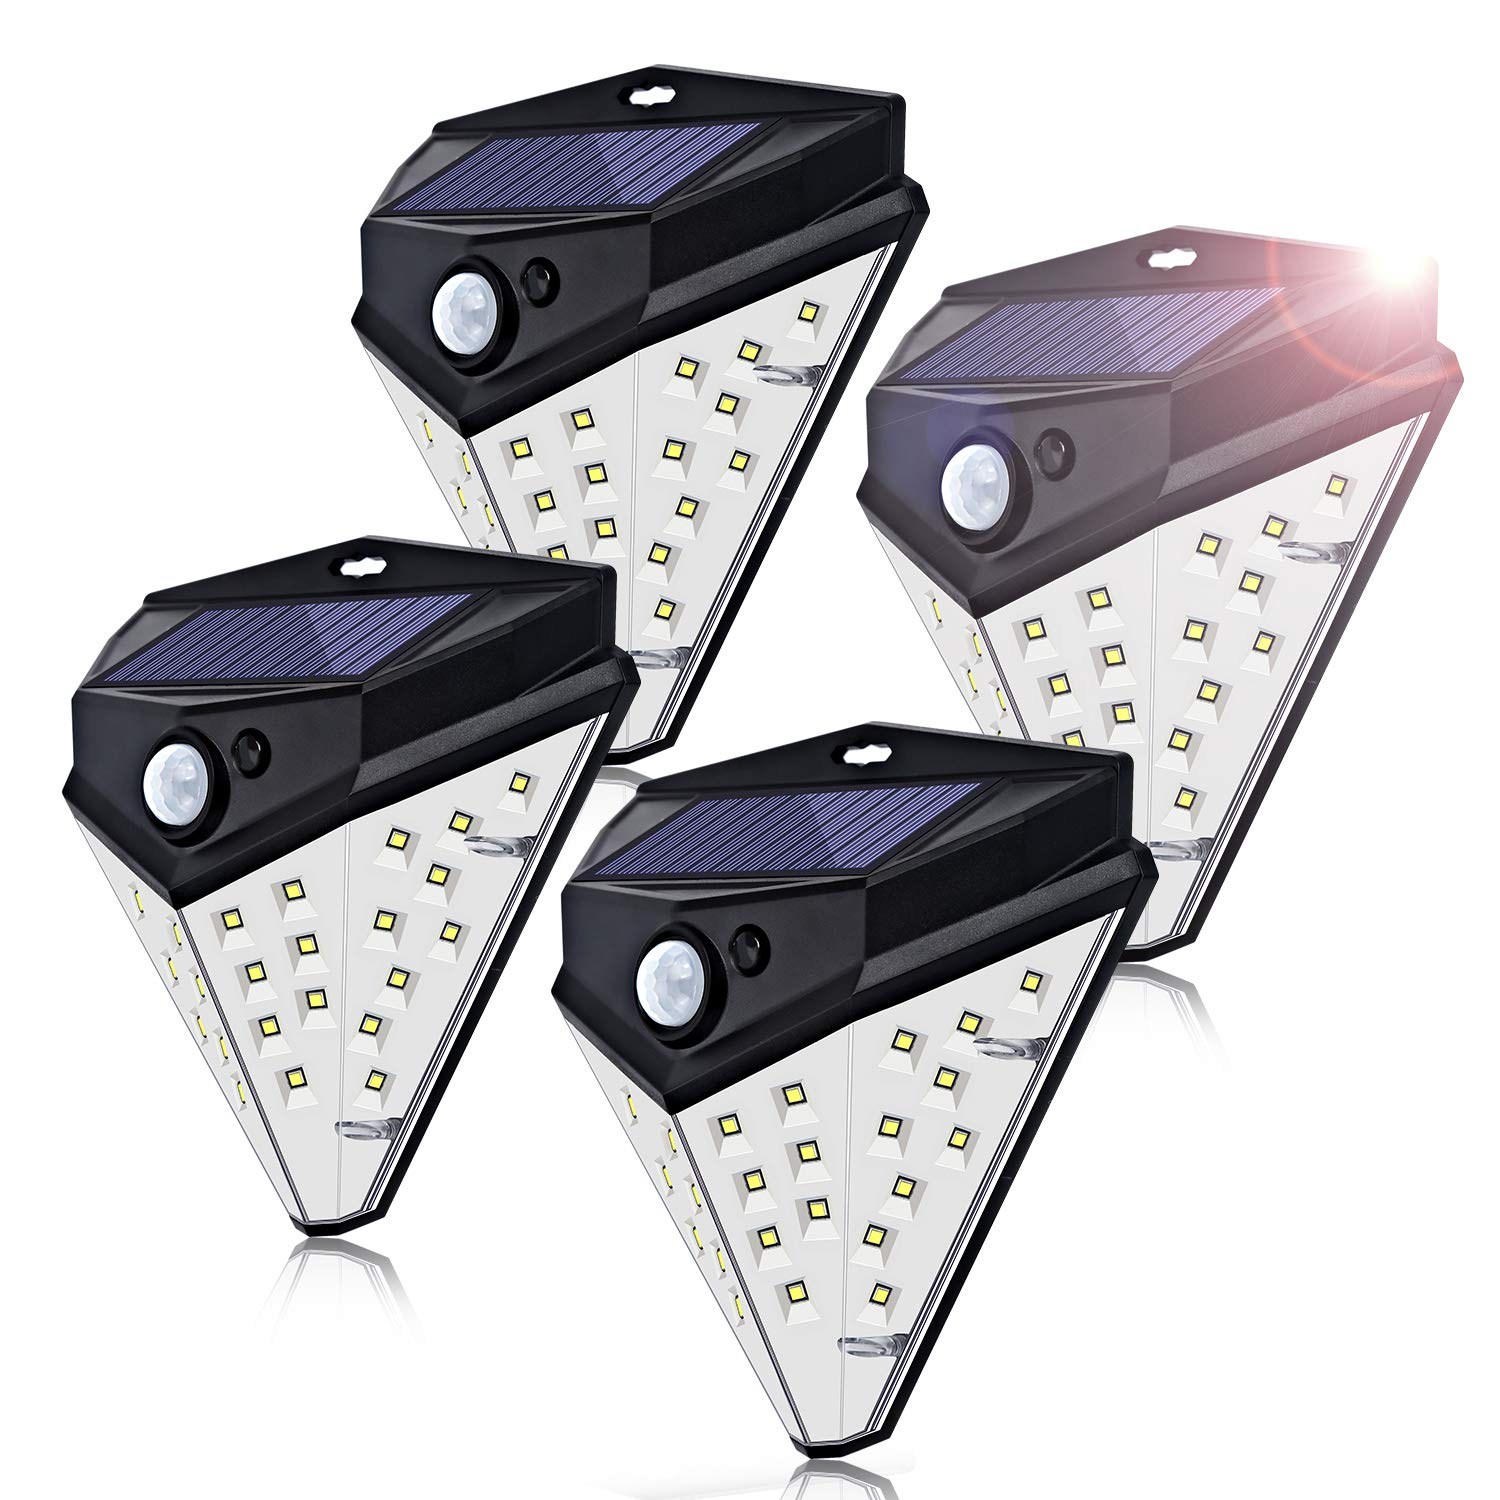 Fityou 32 LED Solar Motion Lights Outdoor, Wireless Motion Sensor Lighting of 4 Sides with 270°Wide Angle, IP67 Waterproof Security Lighting Nightlight for Front Door,Garden,Patio,Driveway,4 Pack